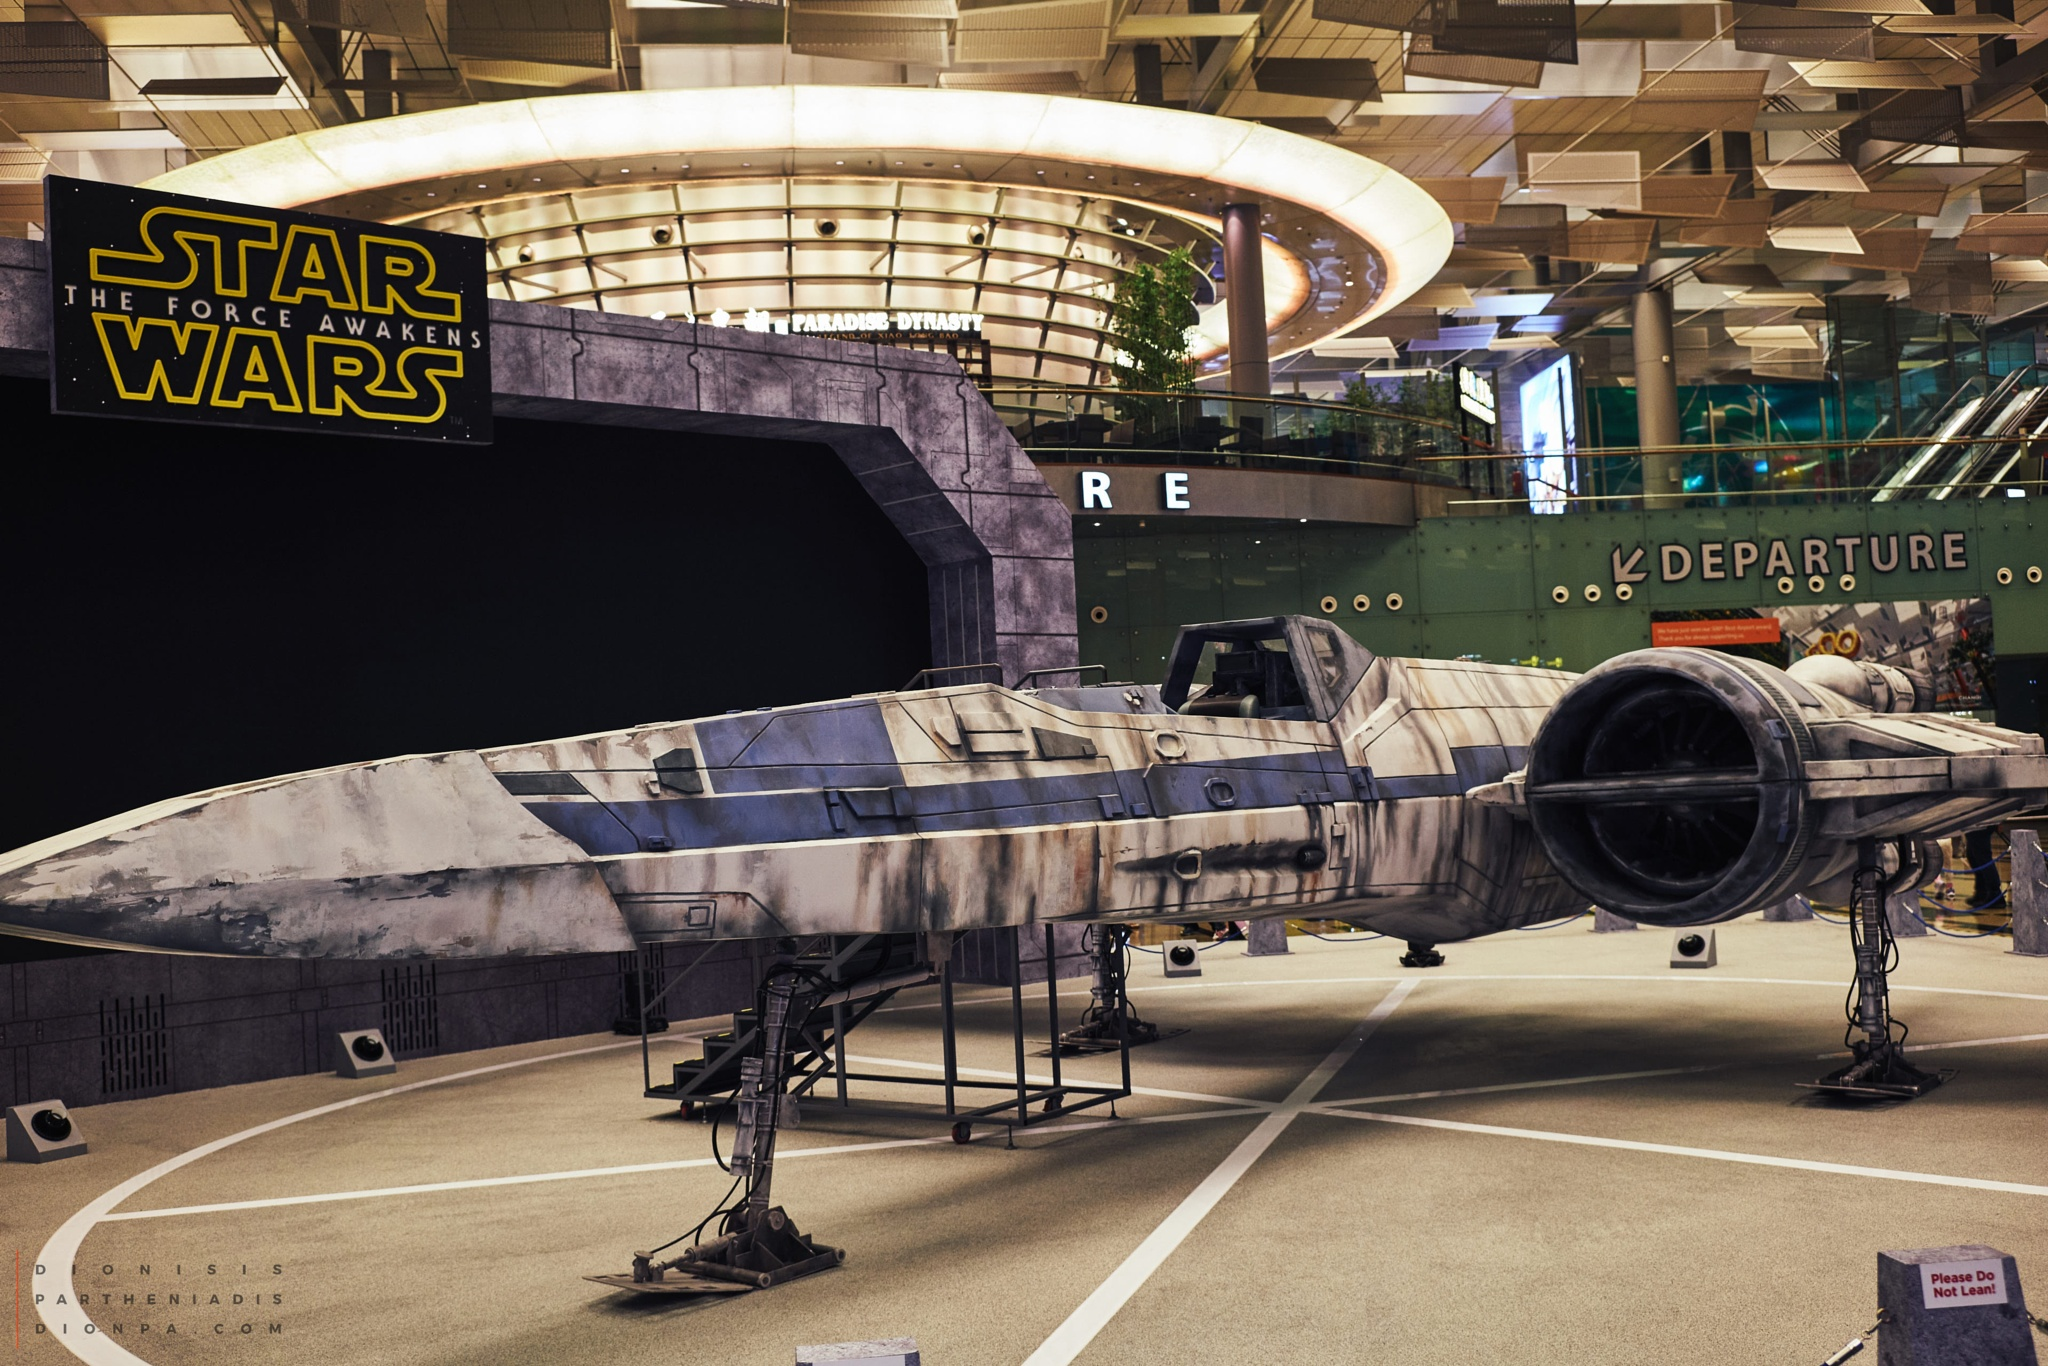 The x-wing (Incom T-65 Starfighter) by Dionisis Partheniadis